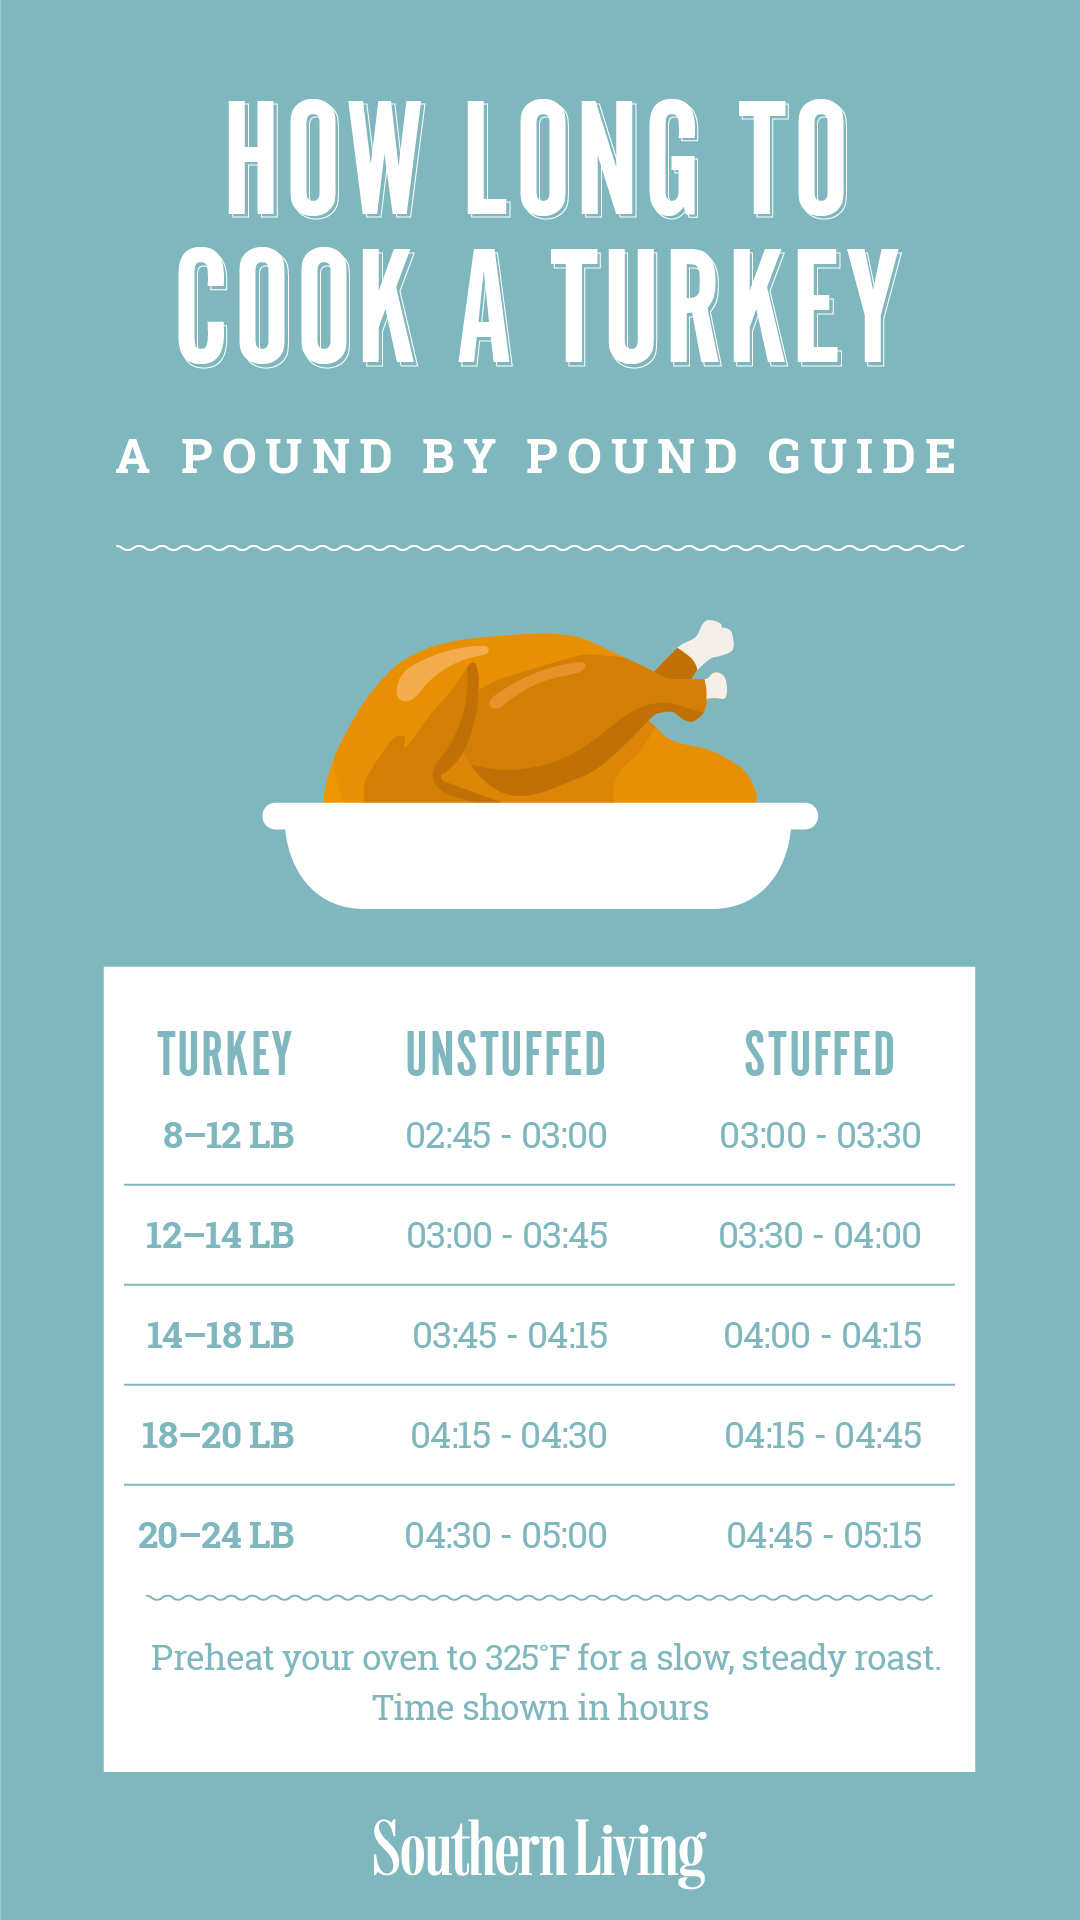 Thanksgiving Turkey Cooking Time By Pound